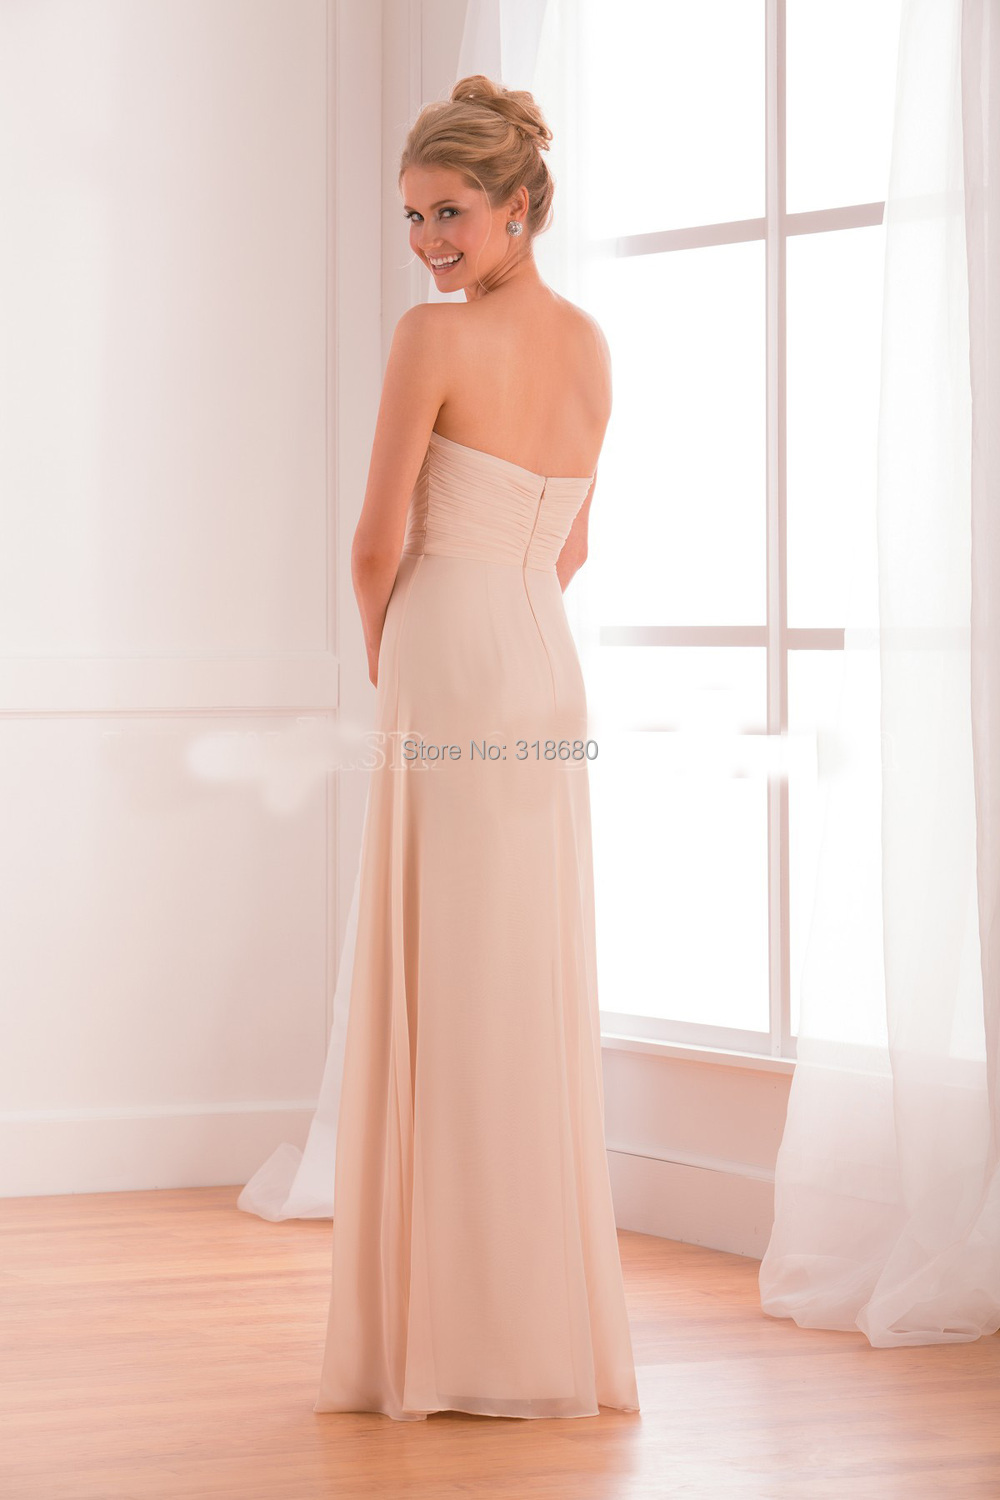 3a36fdf4b44 Top Quality V Neck Lace Top Sexy Bridesmaid Dresses Misty Pink ...